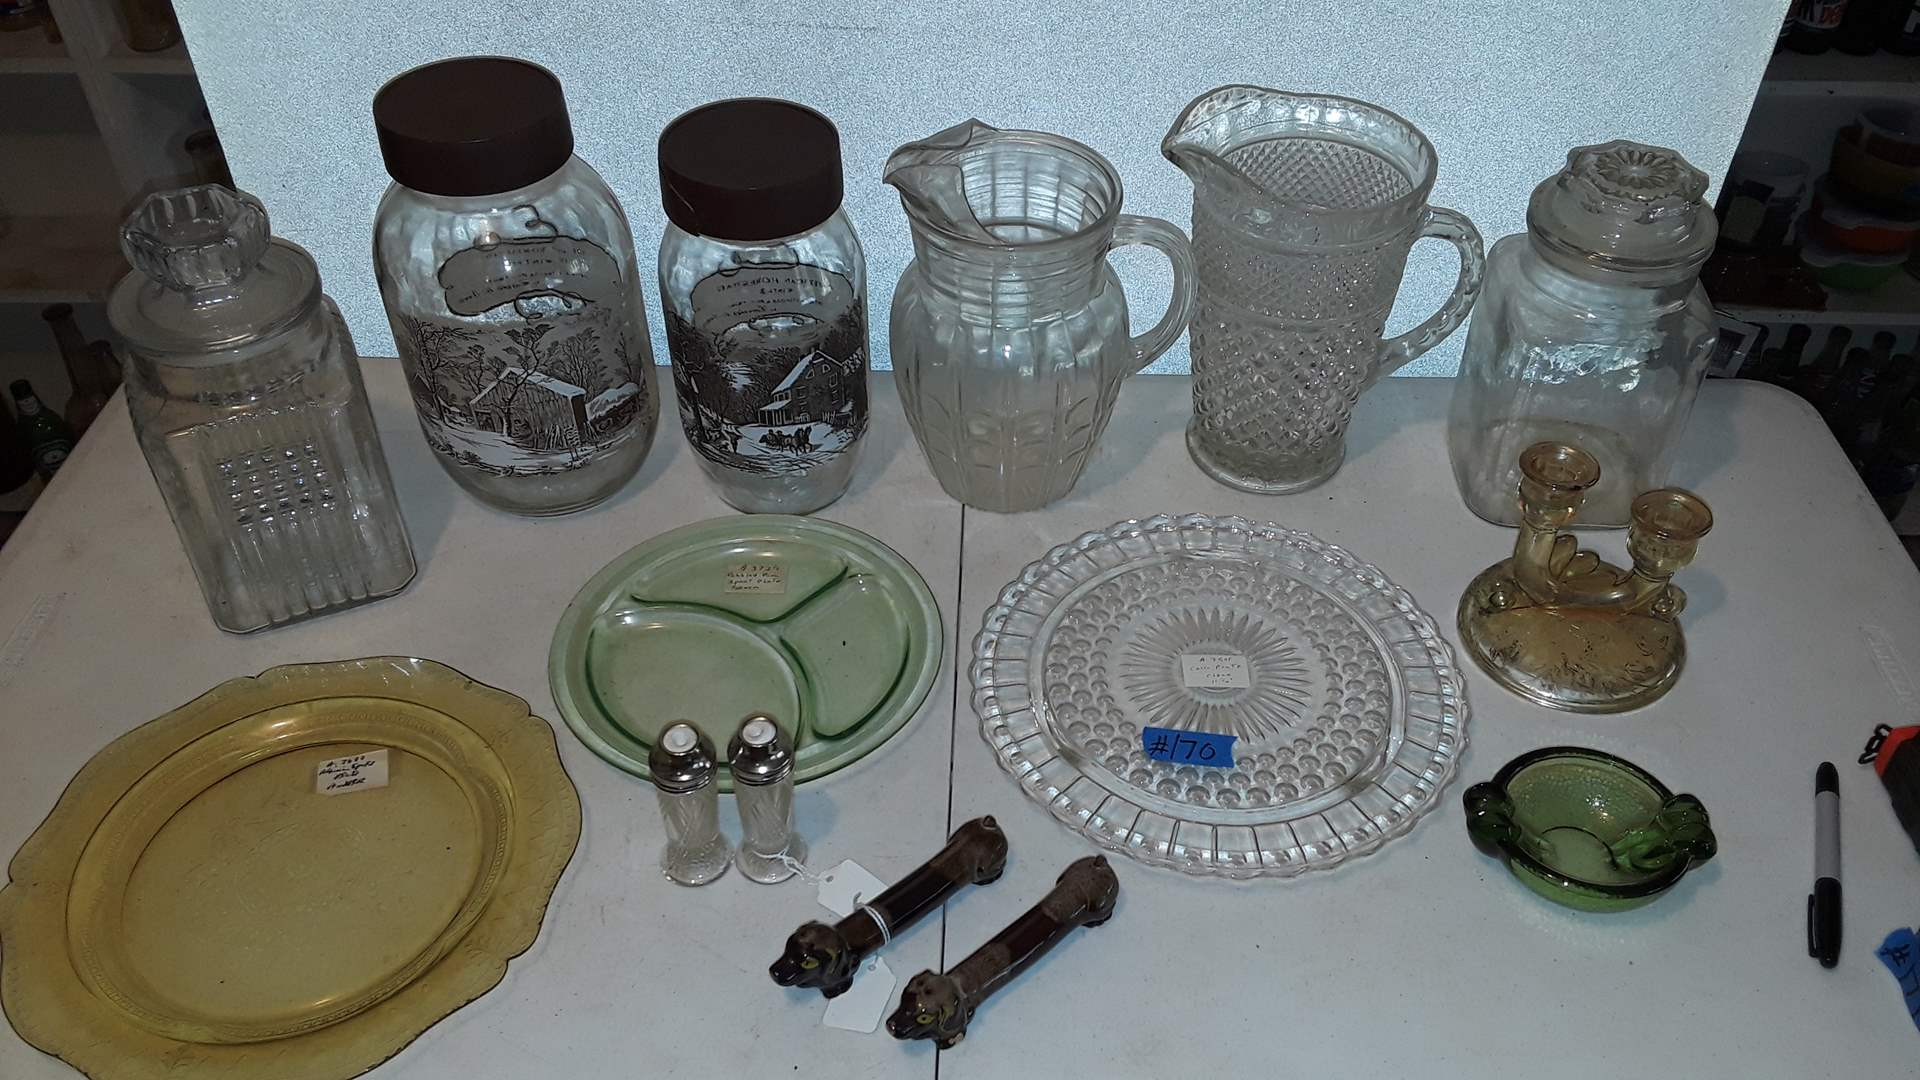 Lot # 170 CURRIER AND IVES CANISTERS ONE HAS CRACKED LID, ANTIQUE GLASSWARE